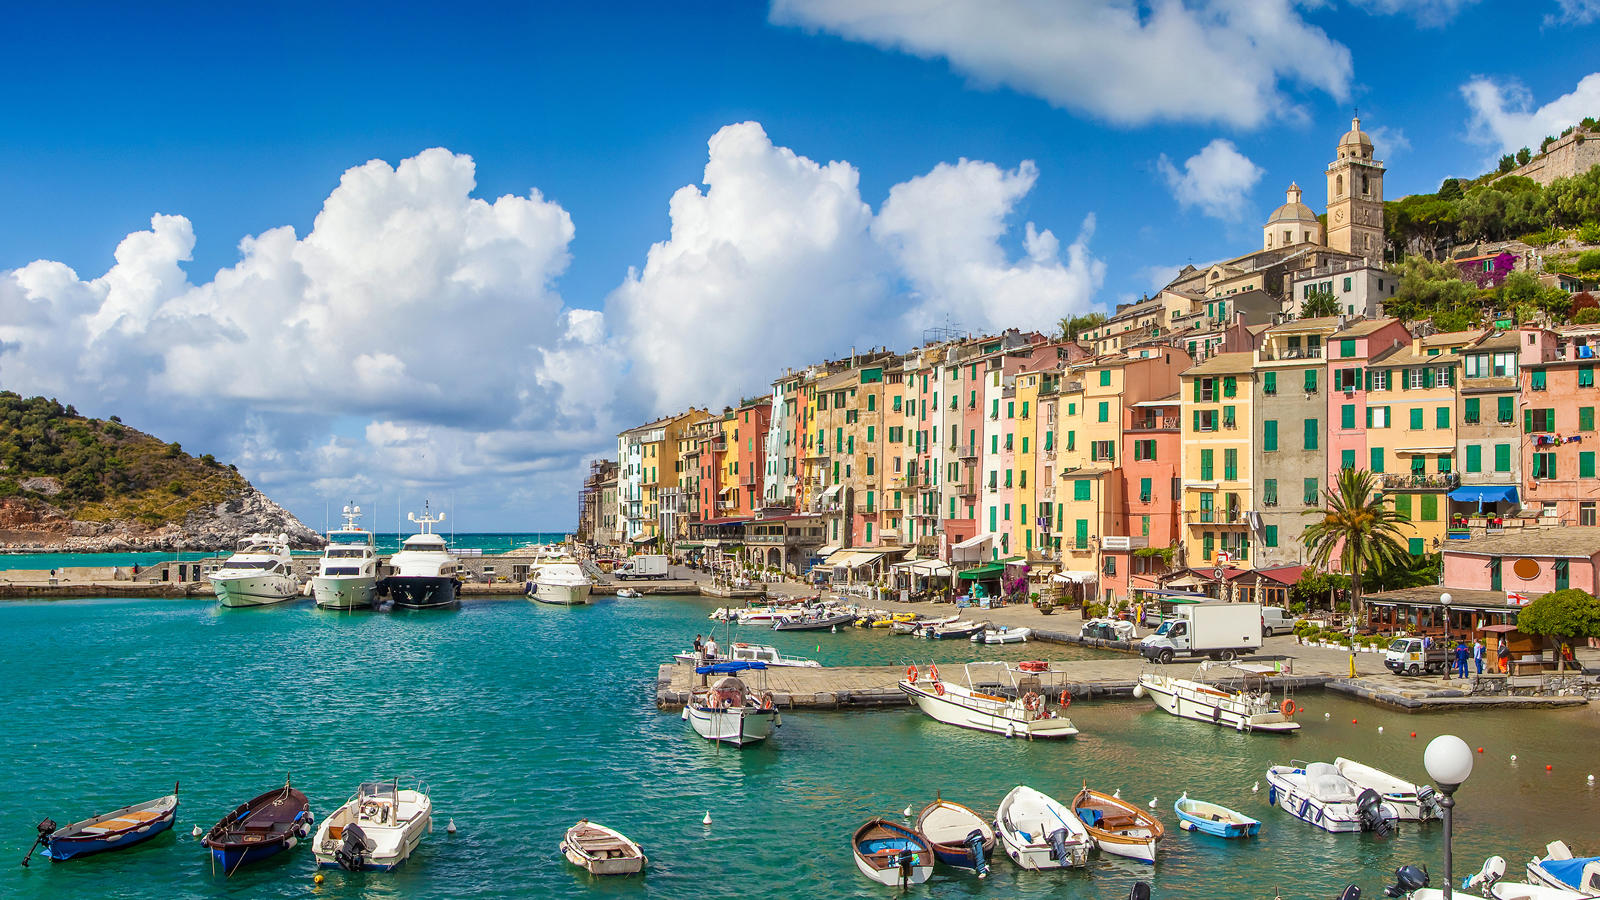 http://weboatlovers.wehomeowners.com/wp-content/uploads/2016/07/Portovenere-SS-1920x1080.jpg